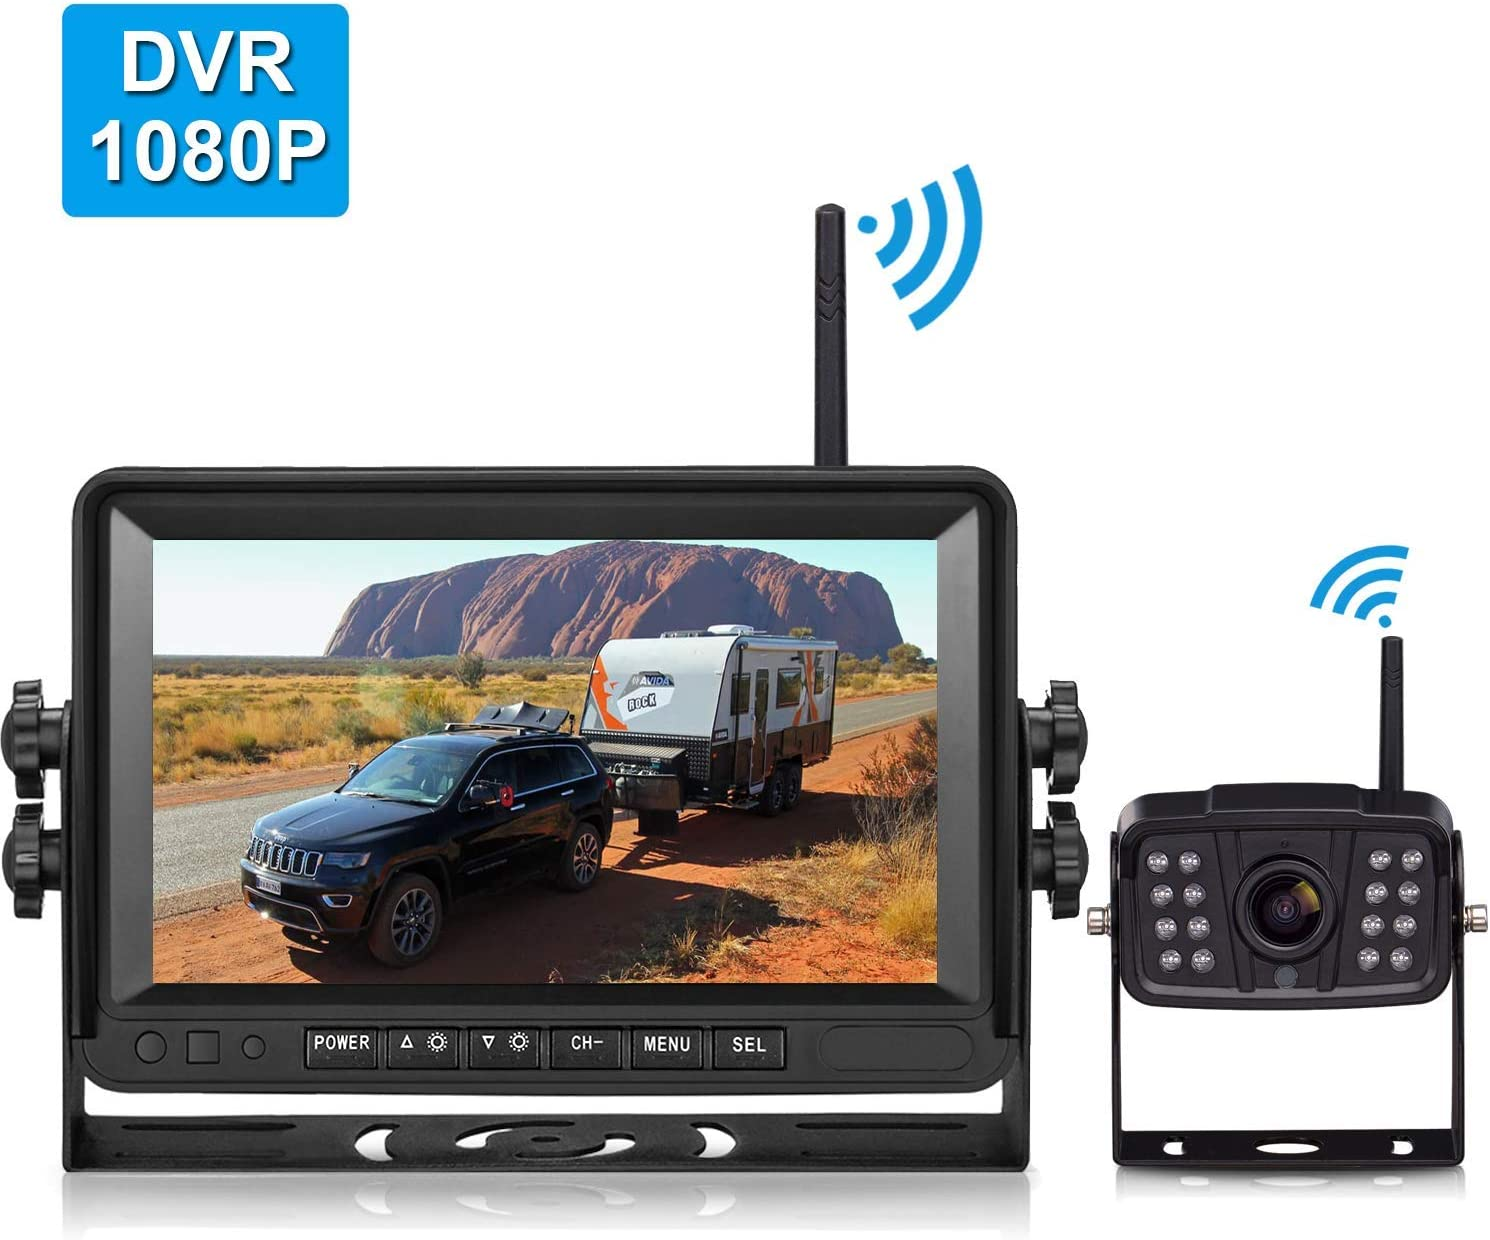 DohonesBest Digital Wireless Backup Camera for RV 5th Wheel Truck Trailers Camper Van with 5 Monitor Rear//Side//Facing View Continous//Reverse Use Guide Lines ON//Off